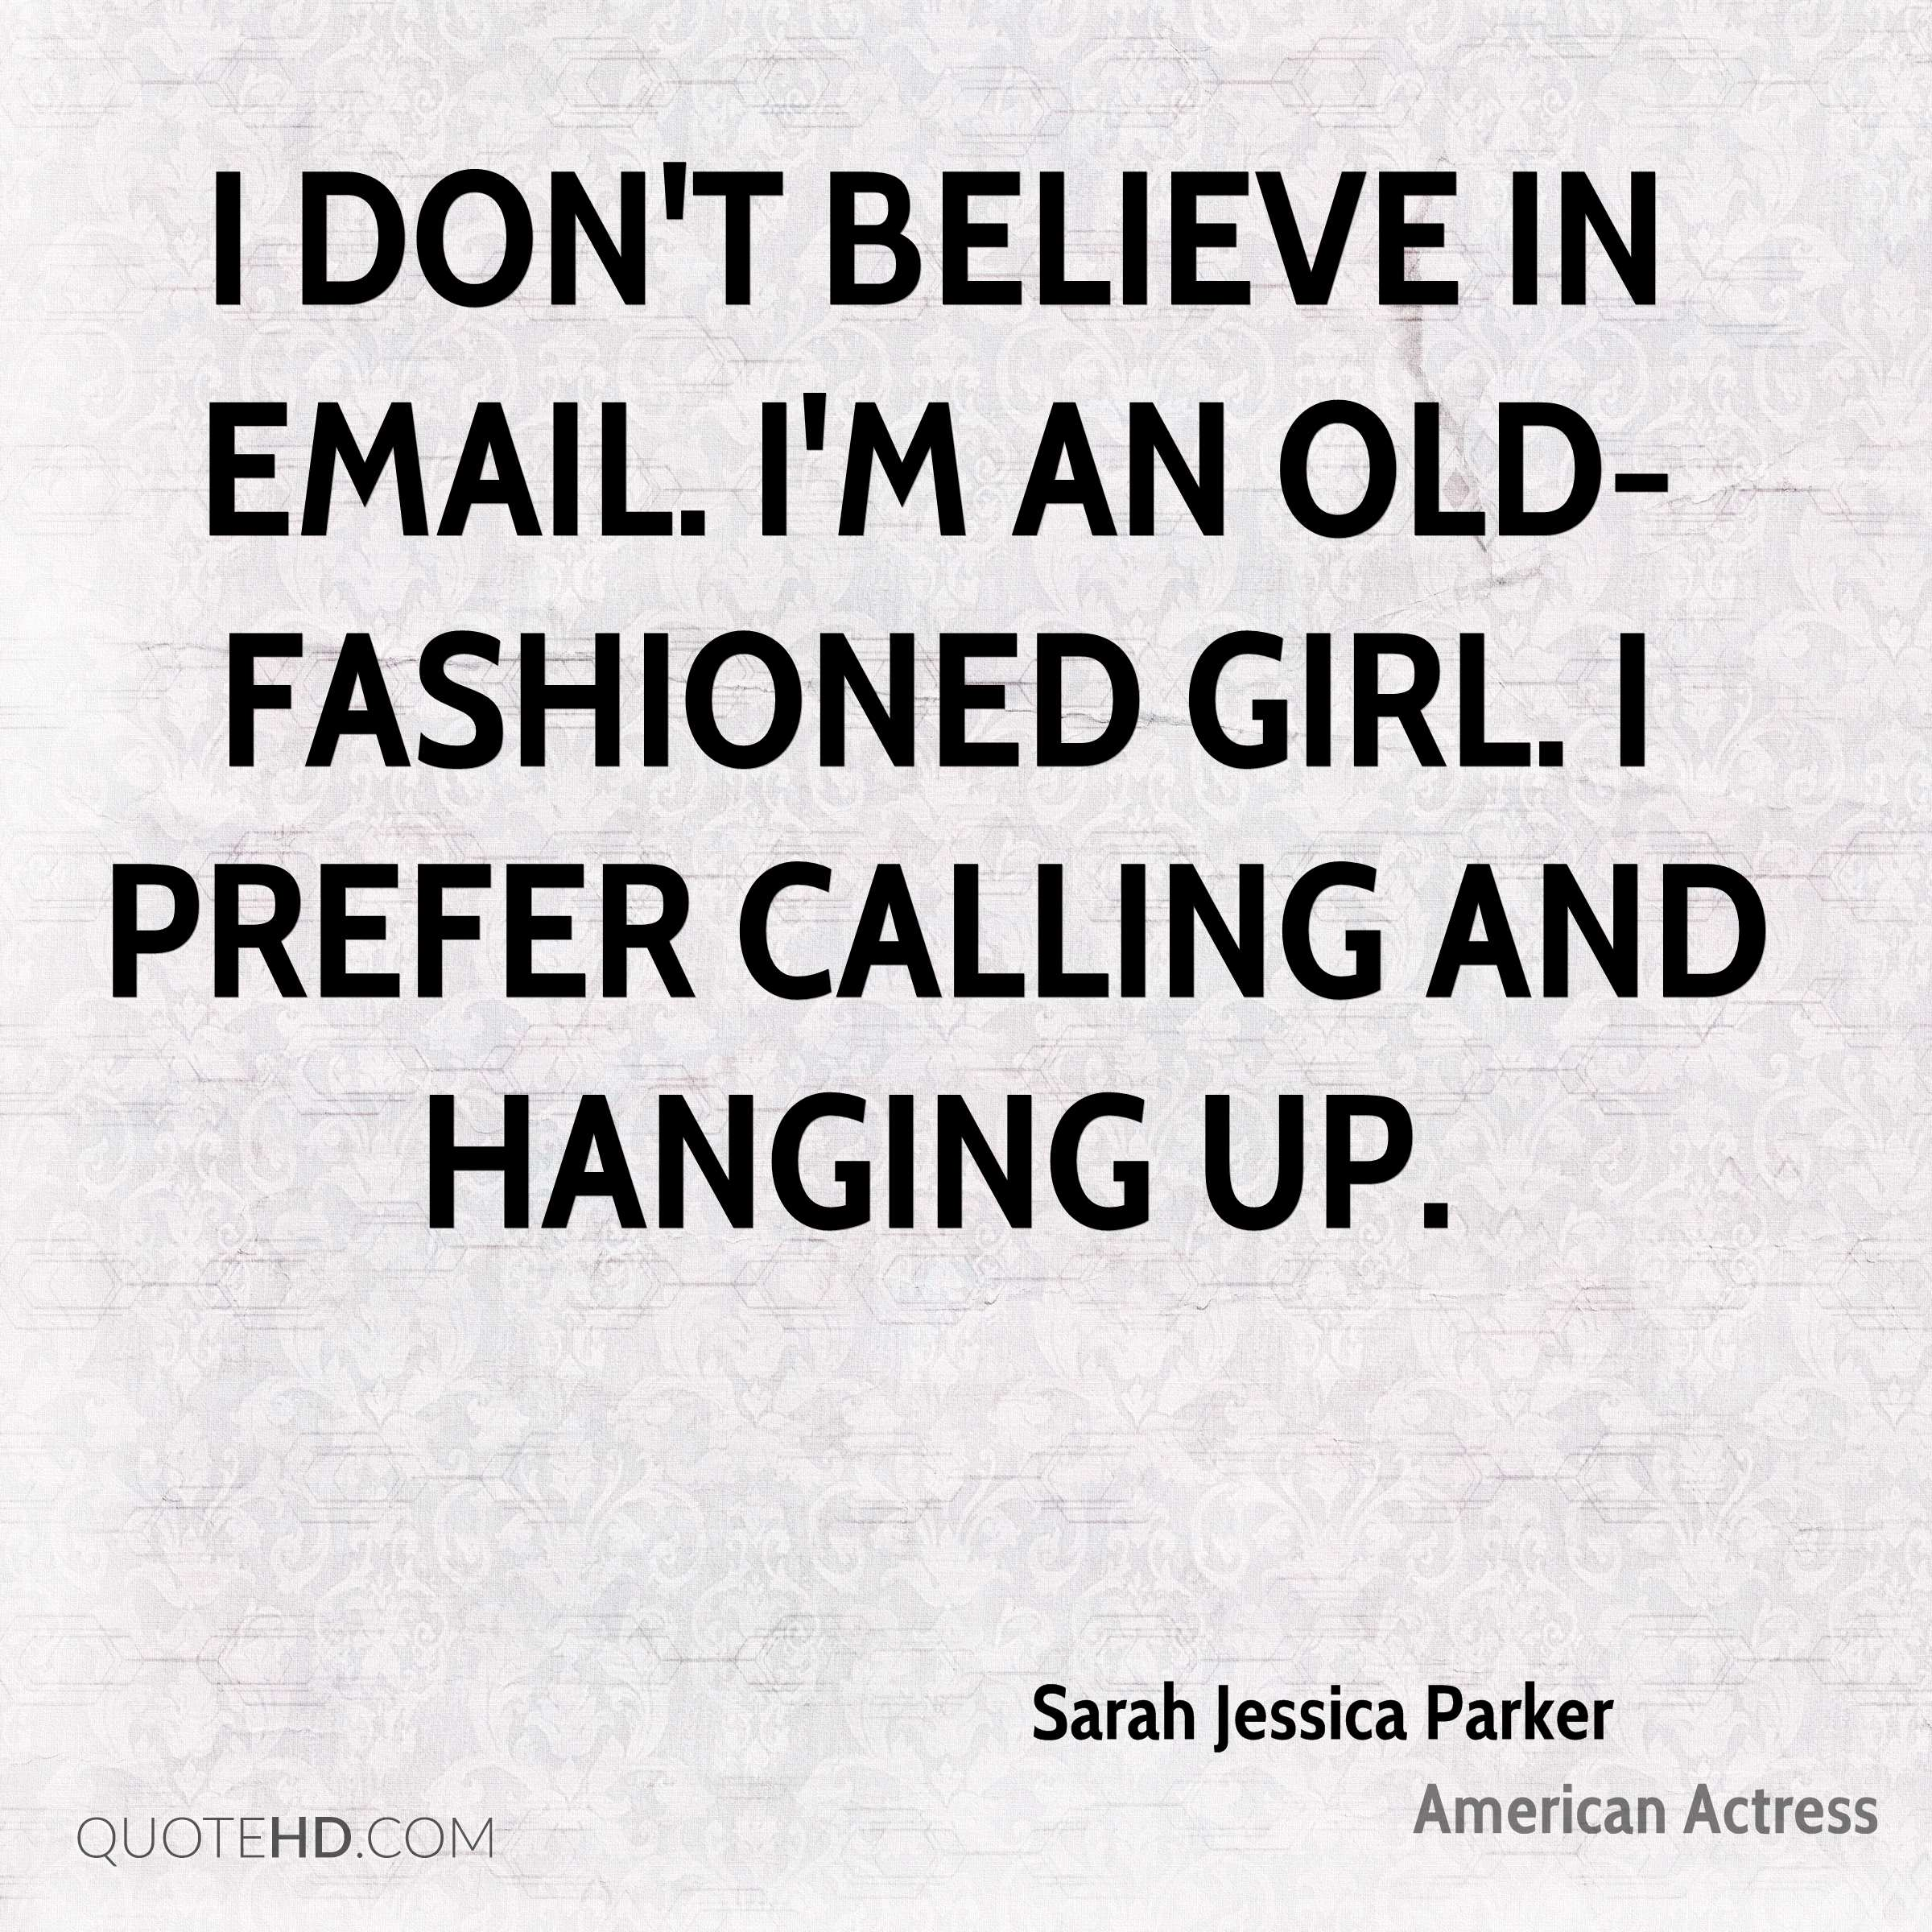 I don't believe in email. I'm an old-fashioned girl. I prefer calling and hanging up.